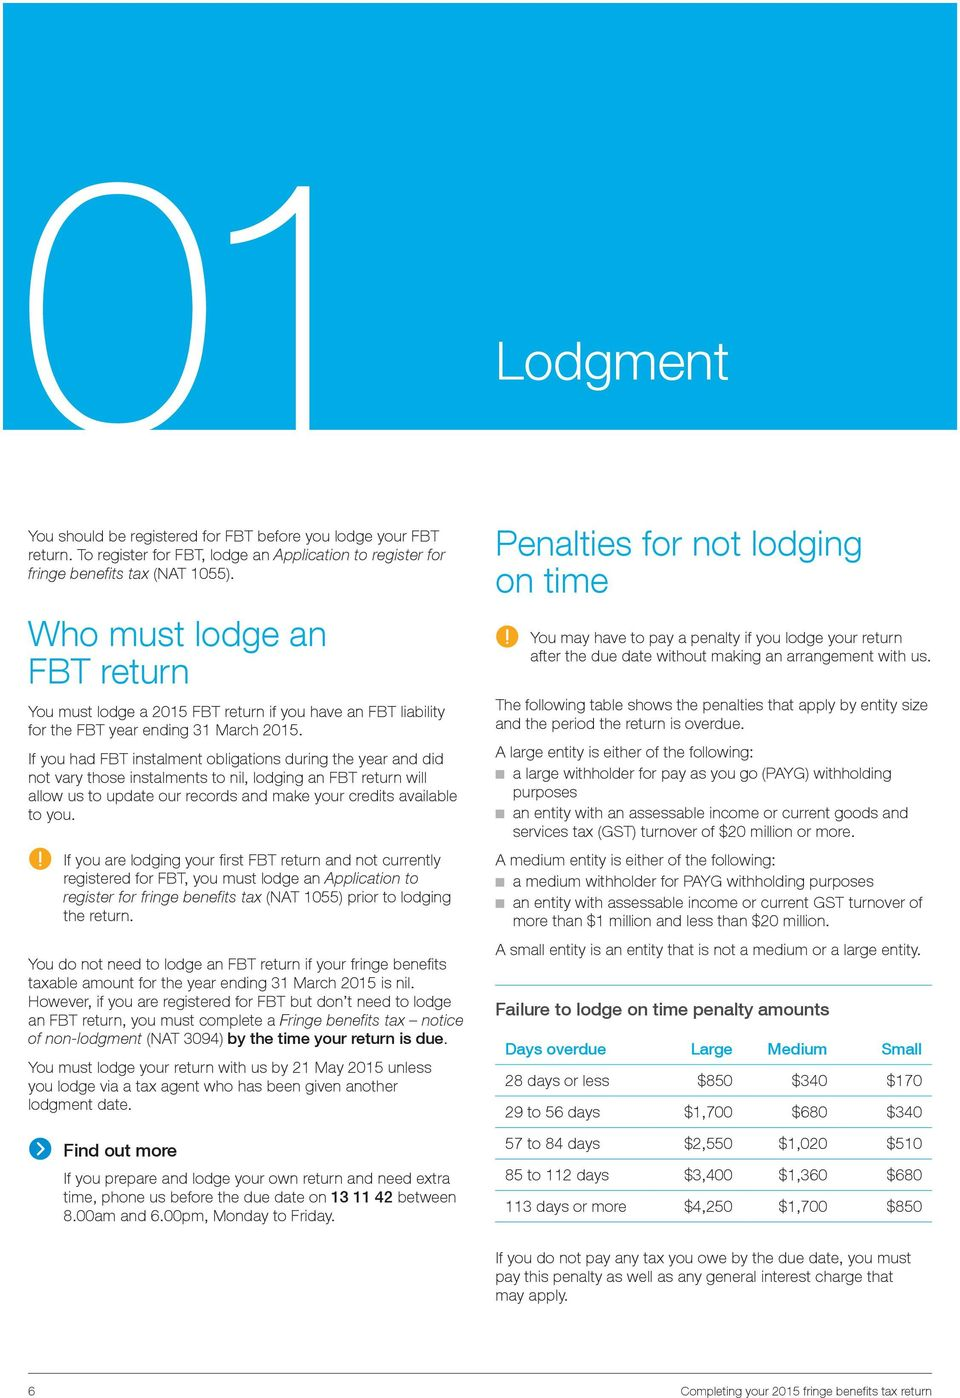 lodging an FBT return will allow us to update our records and make your credits available to you If you are lodging your first FBT return and not currently registered for FBT, you must lodge an